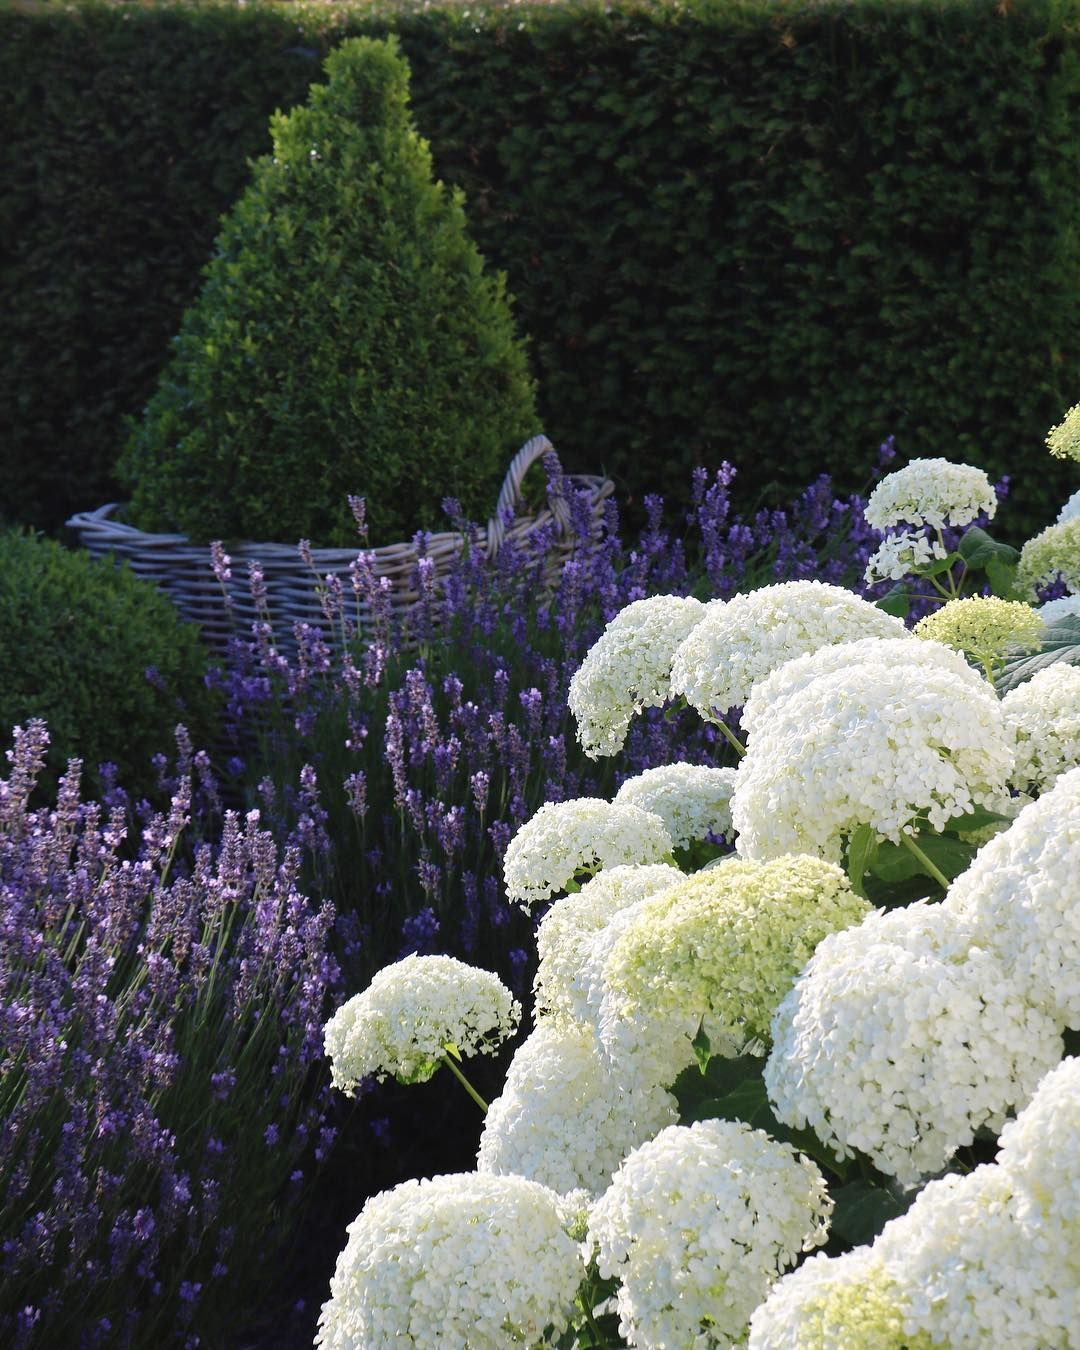 Gina On Instagram White Hydrangeas And Blue Lavenders Make You Dream Of Summer Gardens Wish Yo White Hydrangea Garden Hydrangea Garden Hydrangea Landscaping